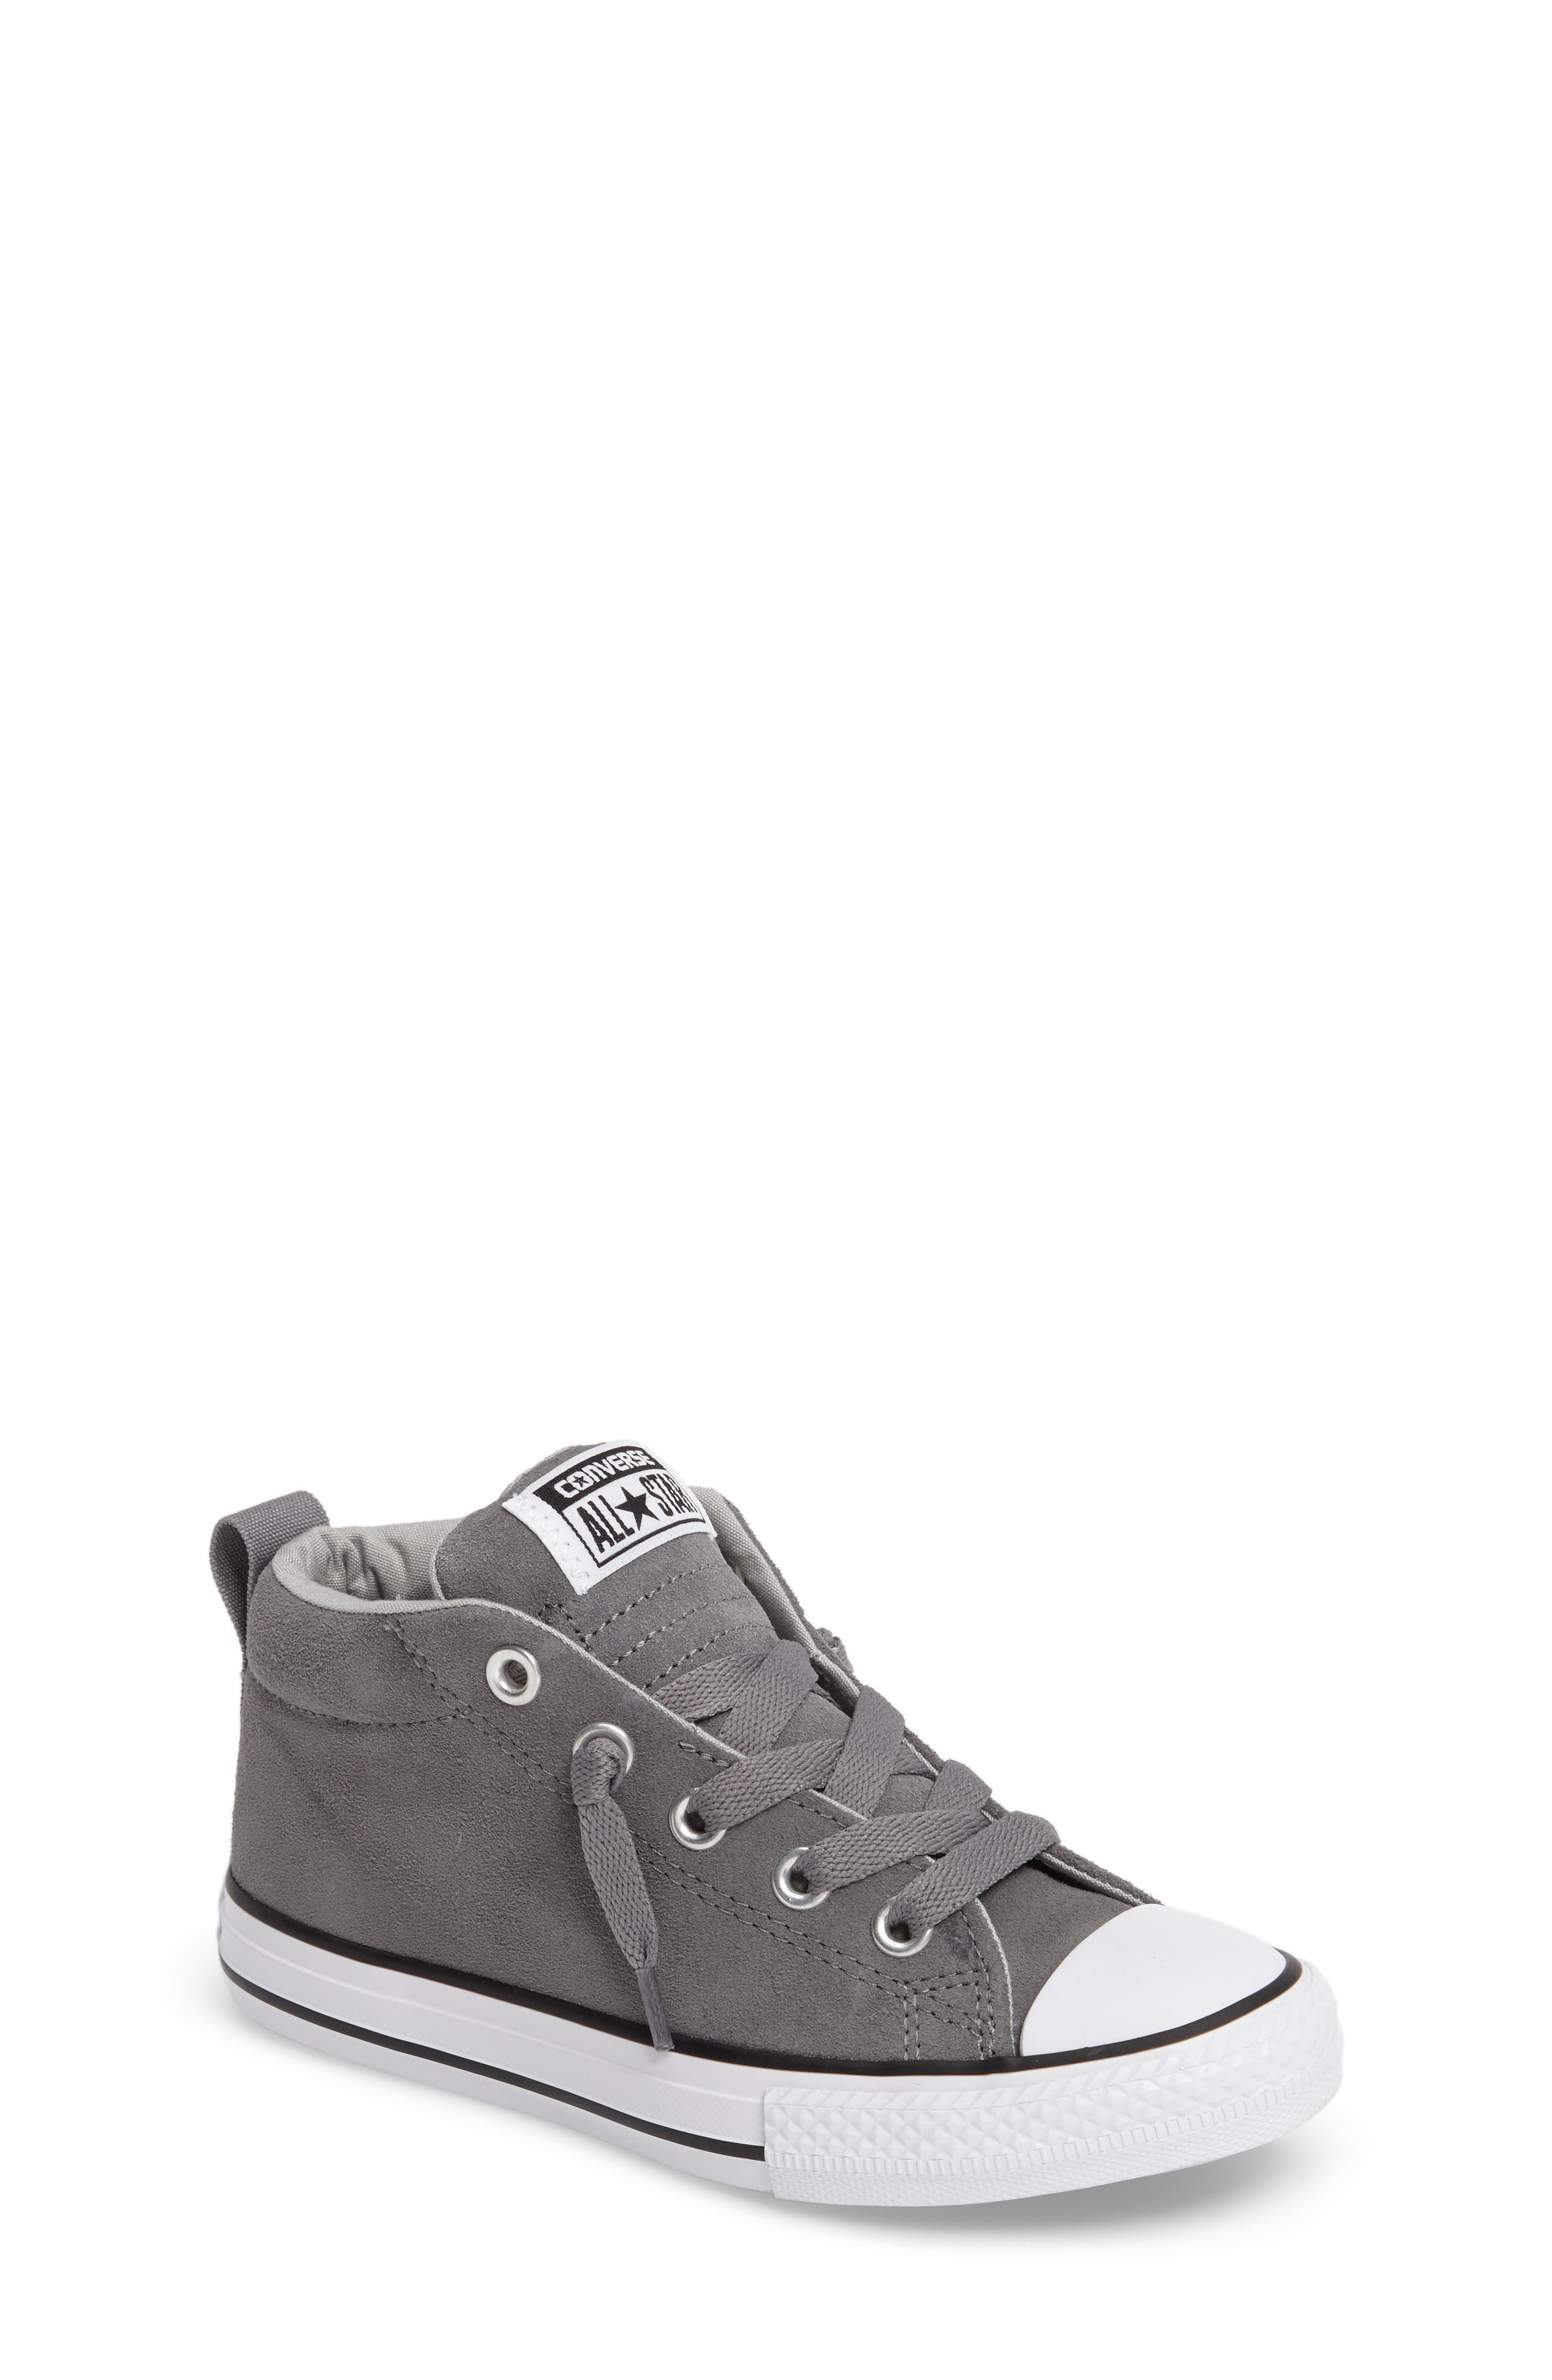 CONVERSE Chuck Taylor<sup>®</sup> All Star<sup>®</sup> Mid Top Sneaker